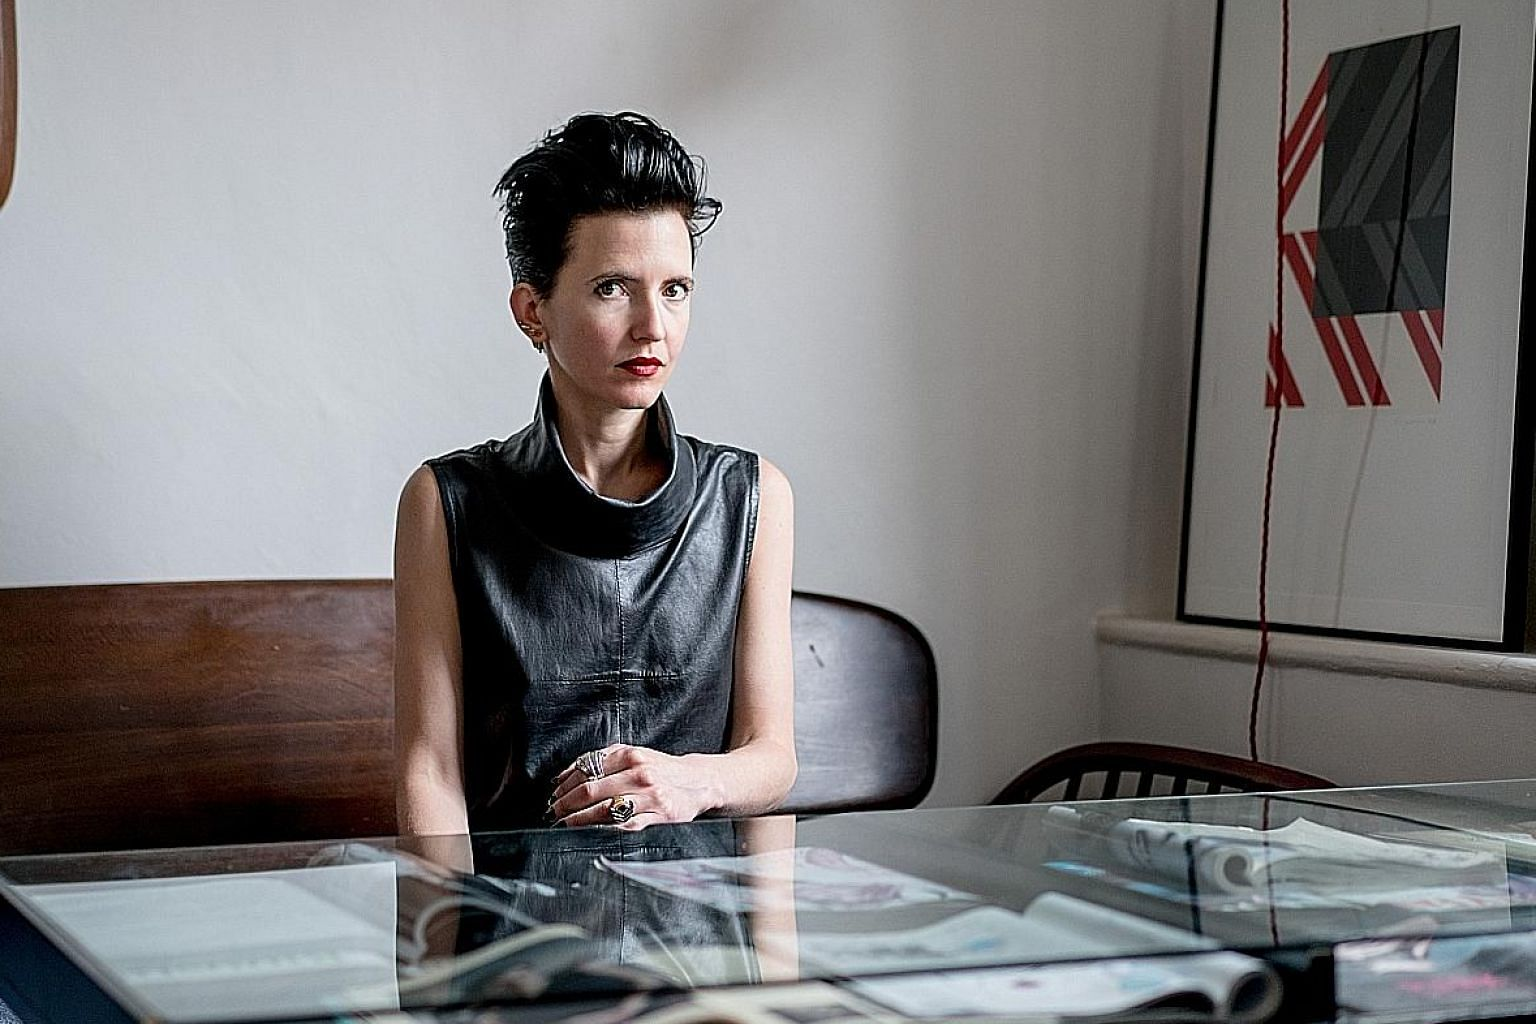 London designer Hannah Martin says jewellery feels personal and can be a form of armour for women.